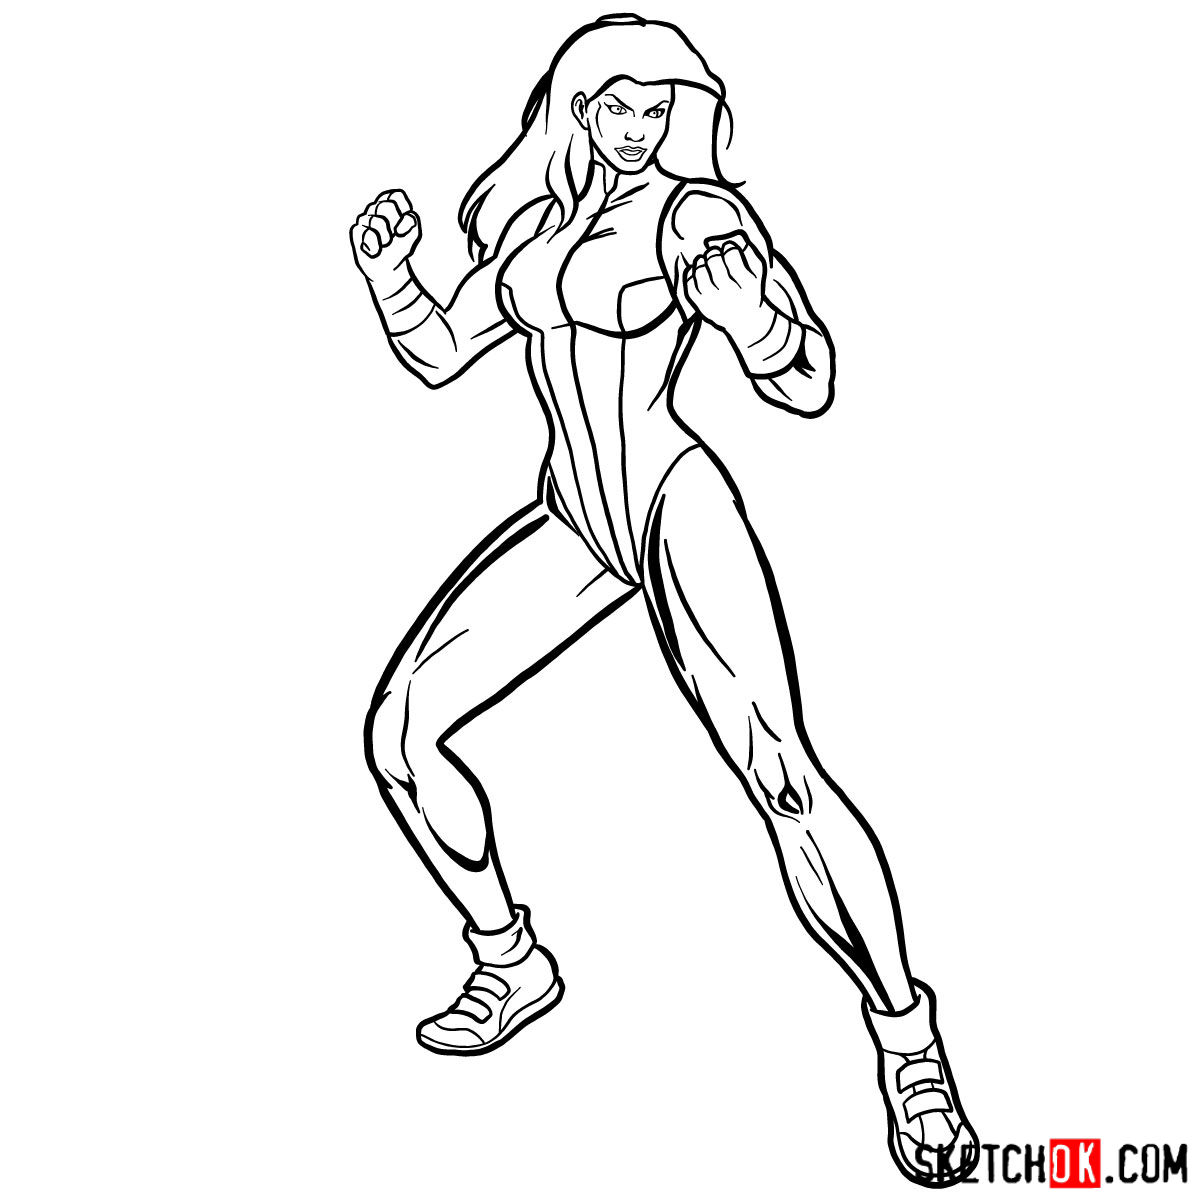 How to draw She-Hulk (Jennifer Walters) from Marvel - step 14